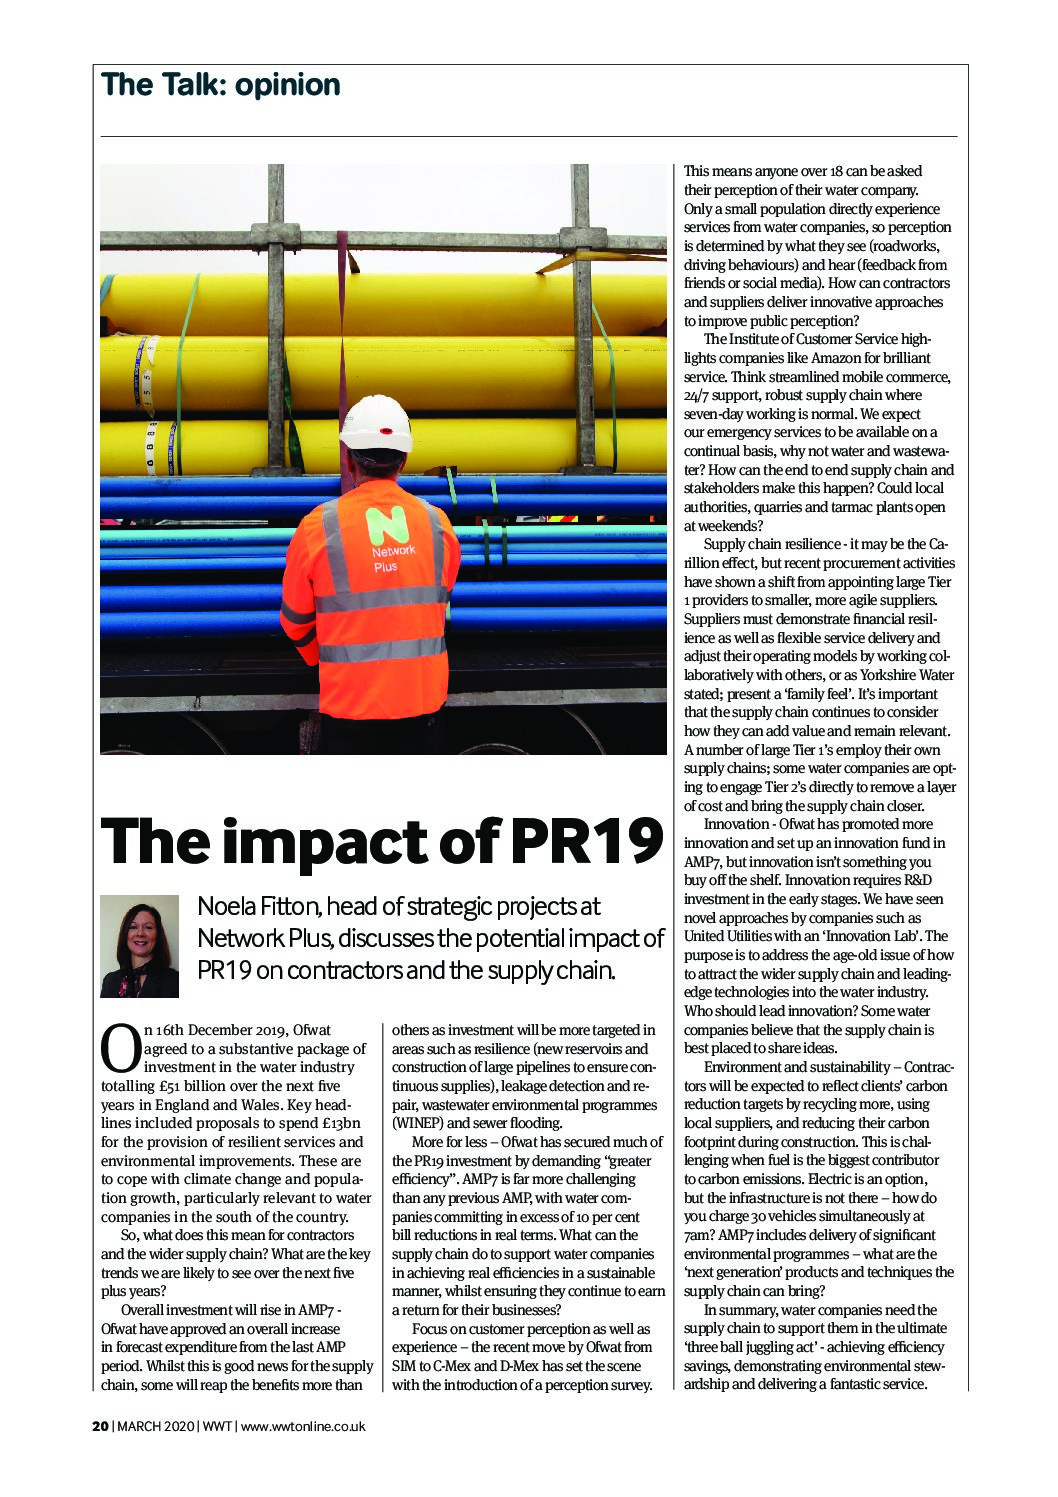 WWT Online – The Impact of PR19